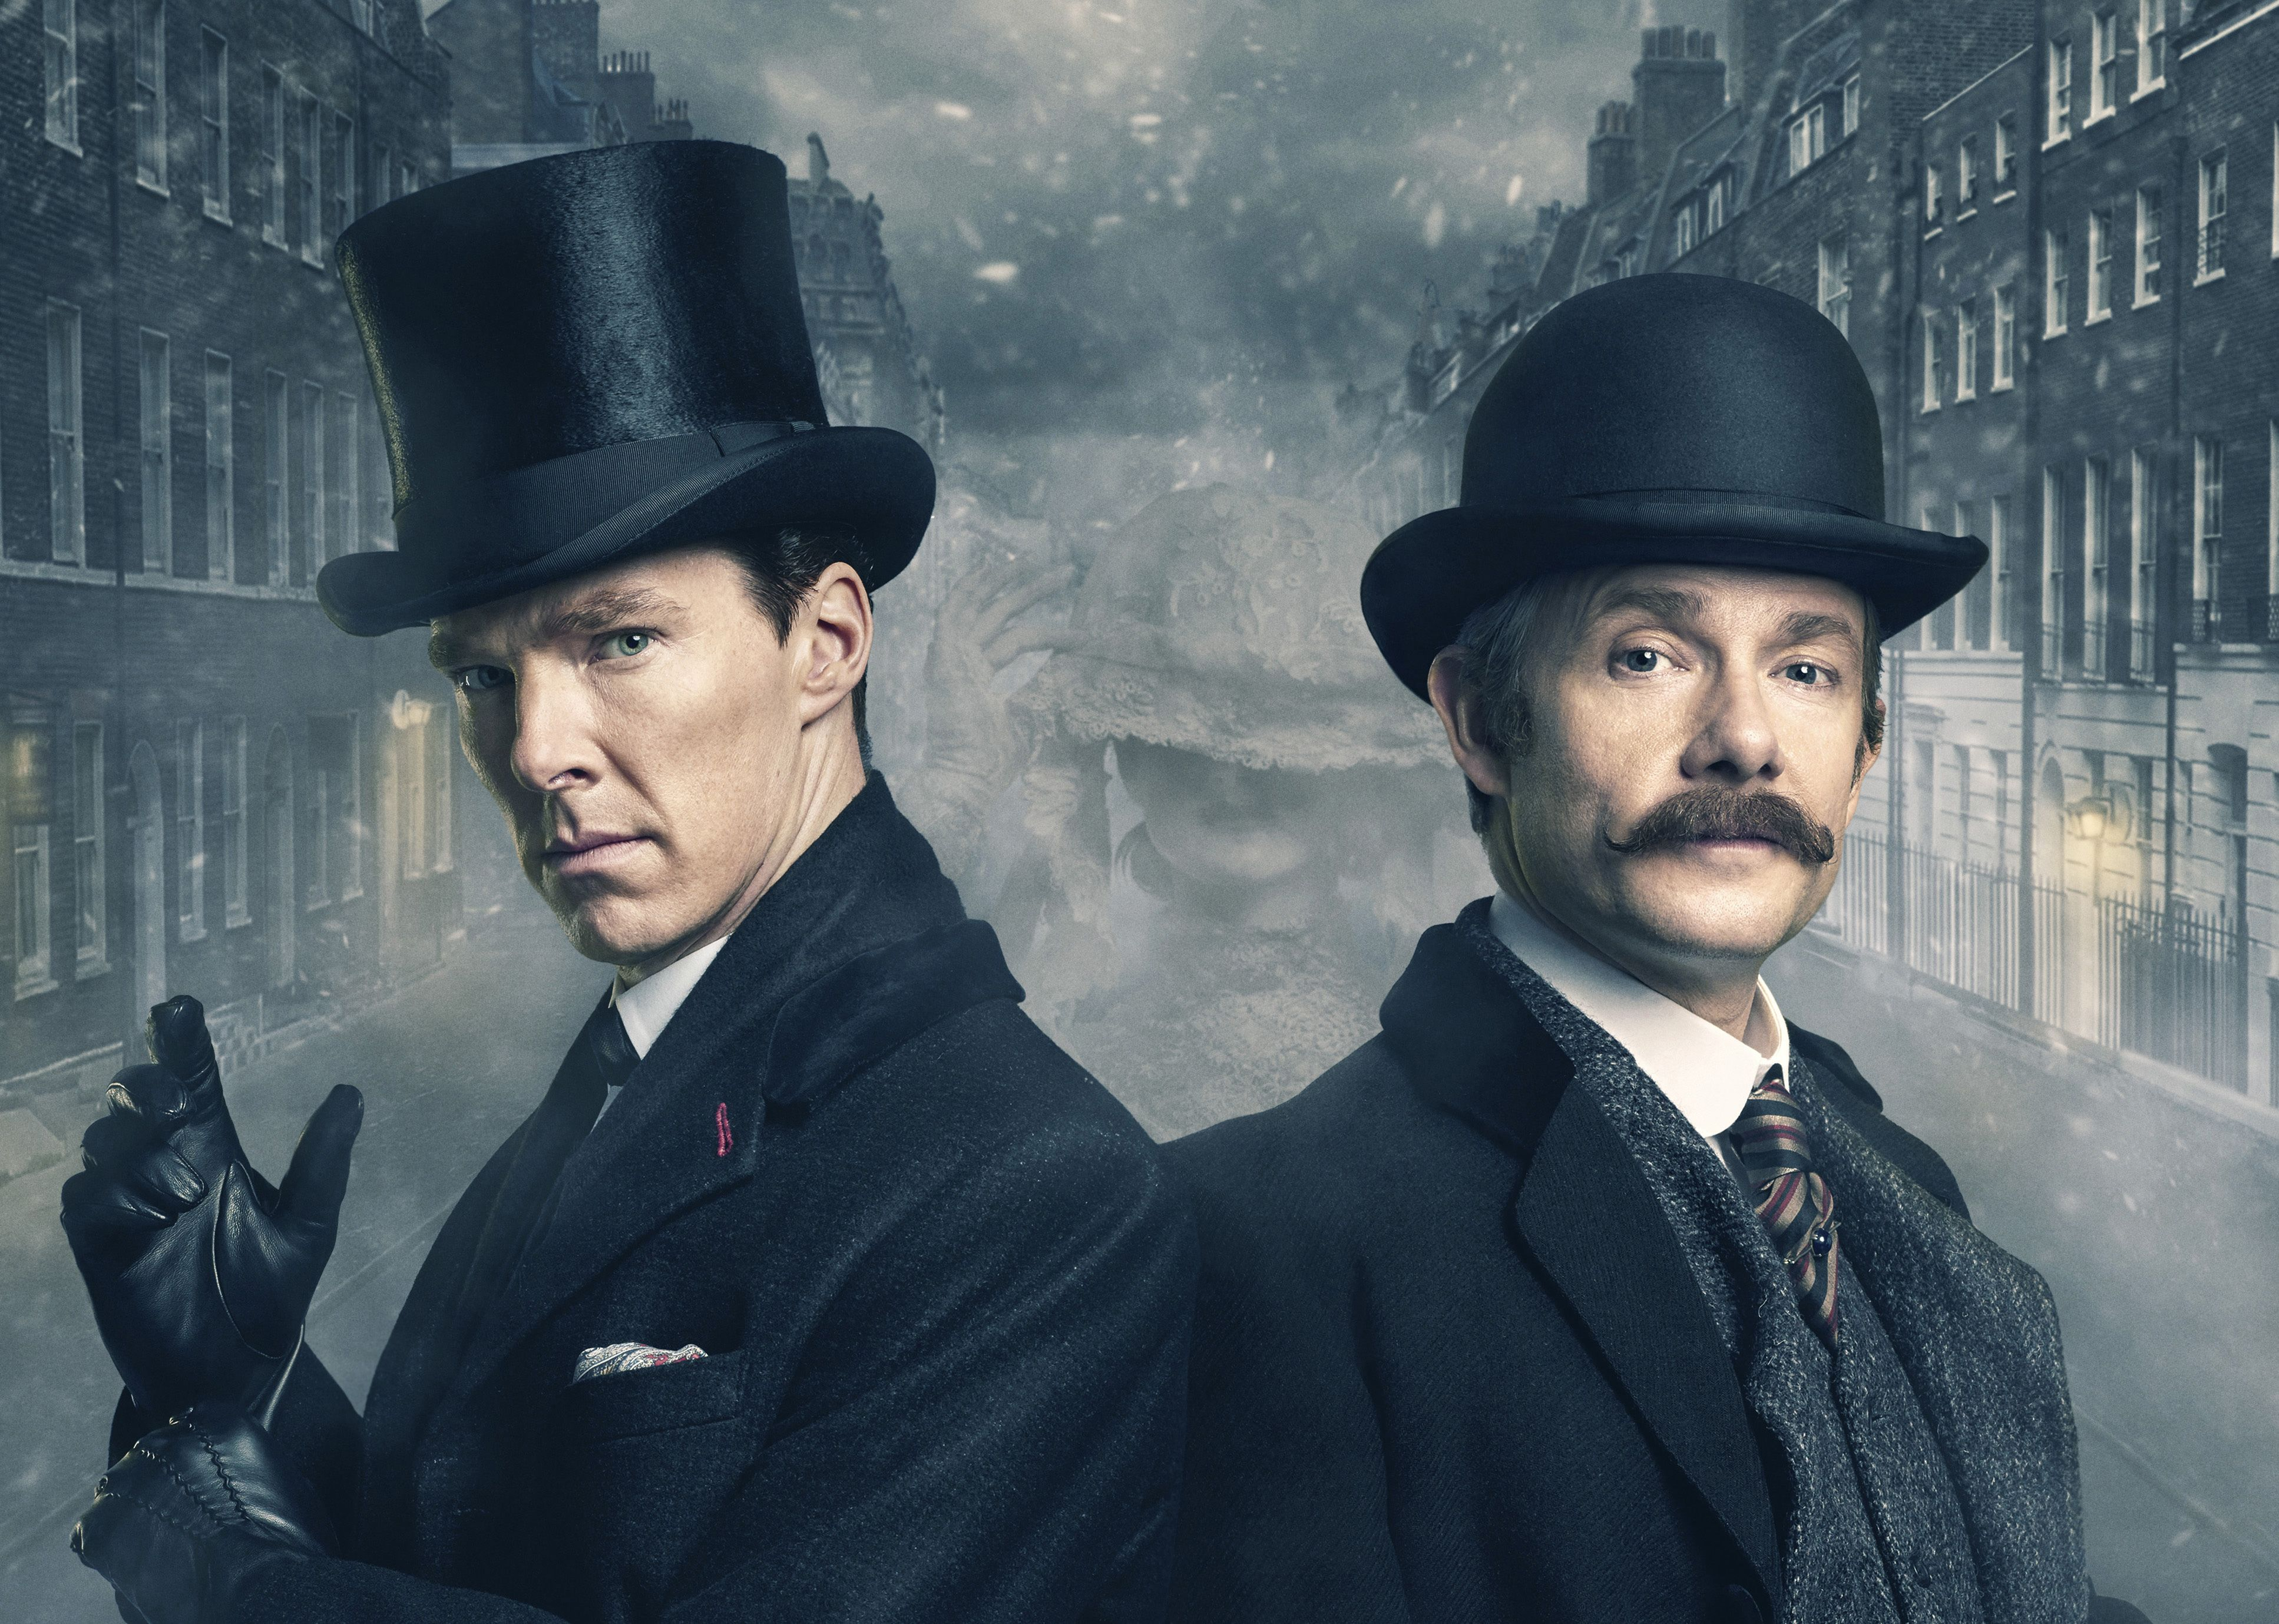 Benedict Cumberbatch And Martin Freeman Sherlock Holmes, HD Tv Shows